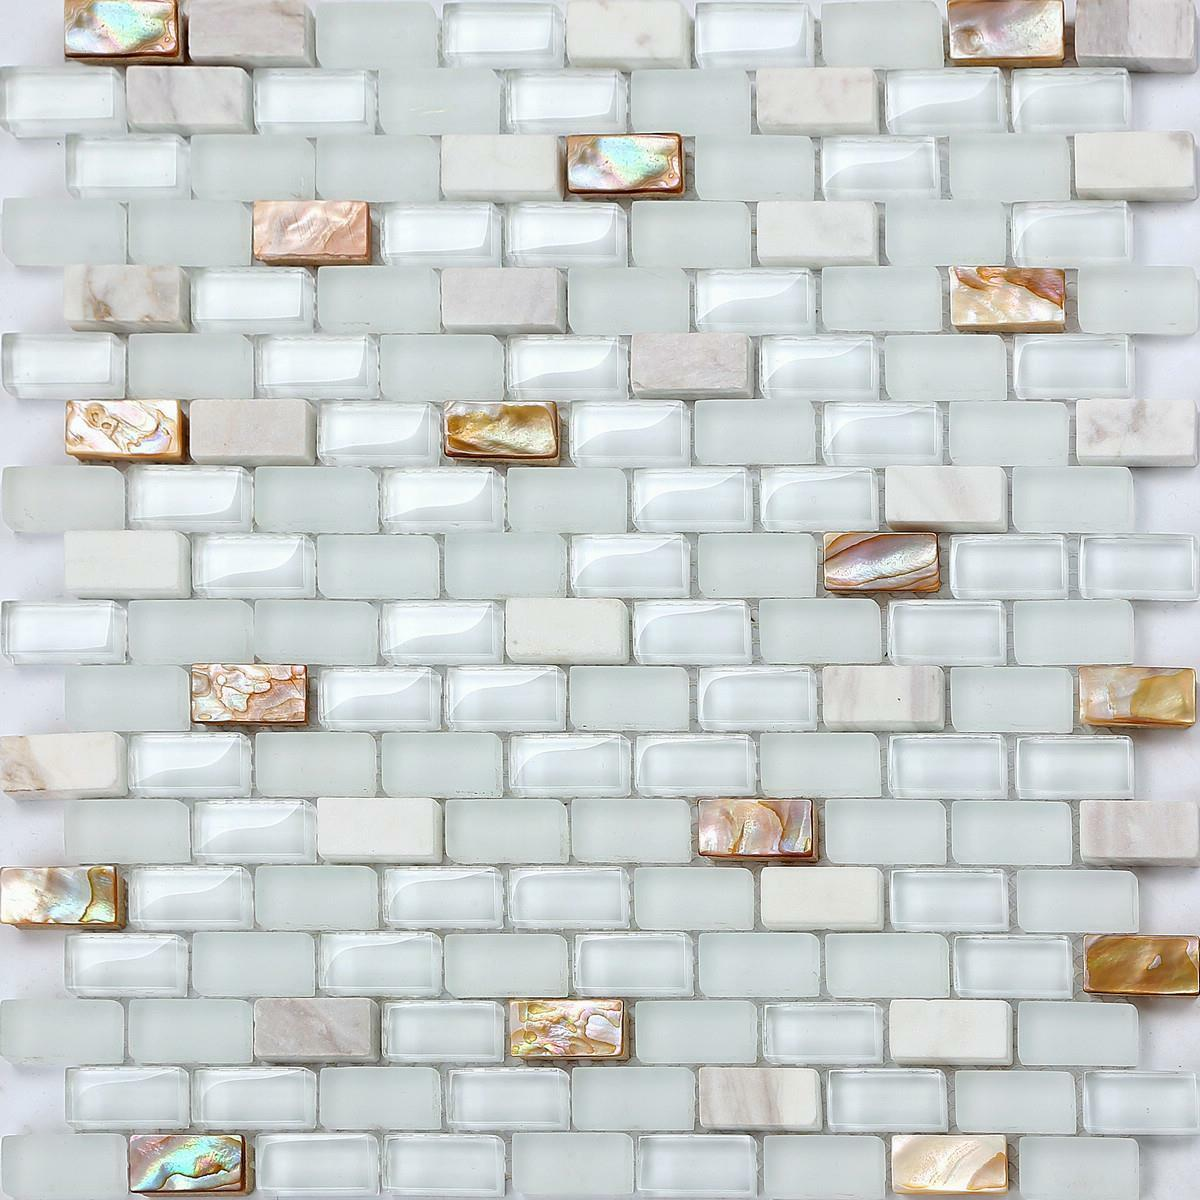 1 SQ M Mother of Pearl , Stone & Glass Mosaic Wall Tile Sheet 0148